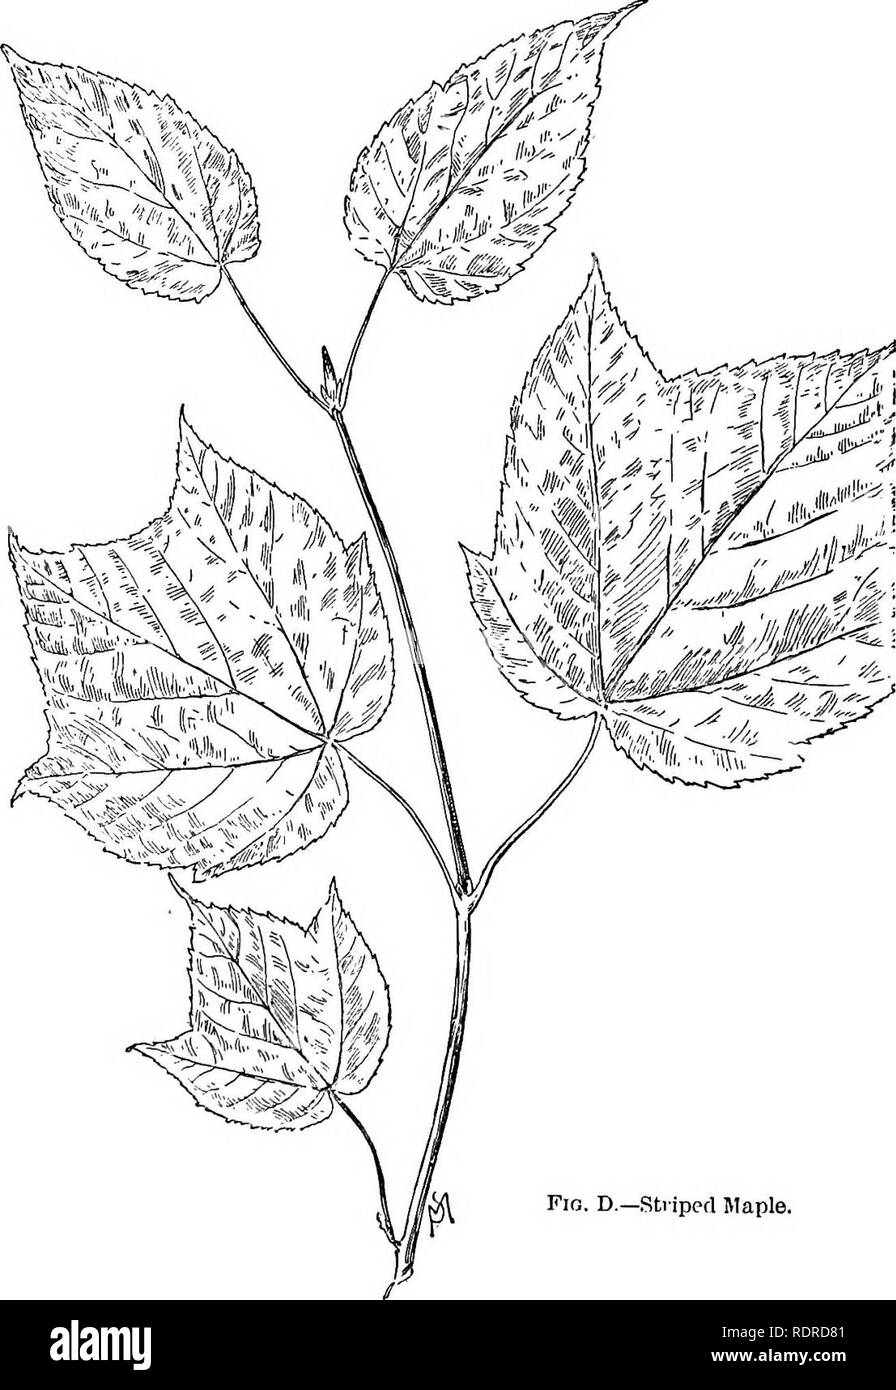 . Familiar trees and their leaves . Trees. FAMILIAR TREES AND THEIR LEAVES.. Please note that these images are extracted from scanned page images that may have been digitally enhanced for readability - coloration and appearance of these illustrations may not perfectly resemble the original work.. Mathews, F. Schuyler (Ferdinand Schuyler), 1854-1938. New York : D. Appleton - Stock Image